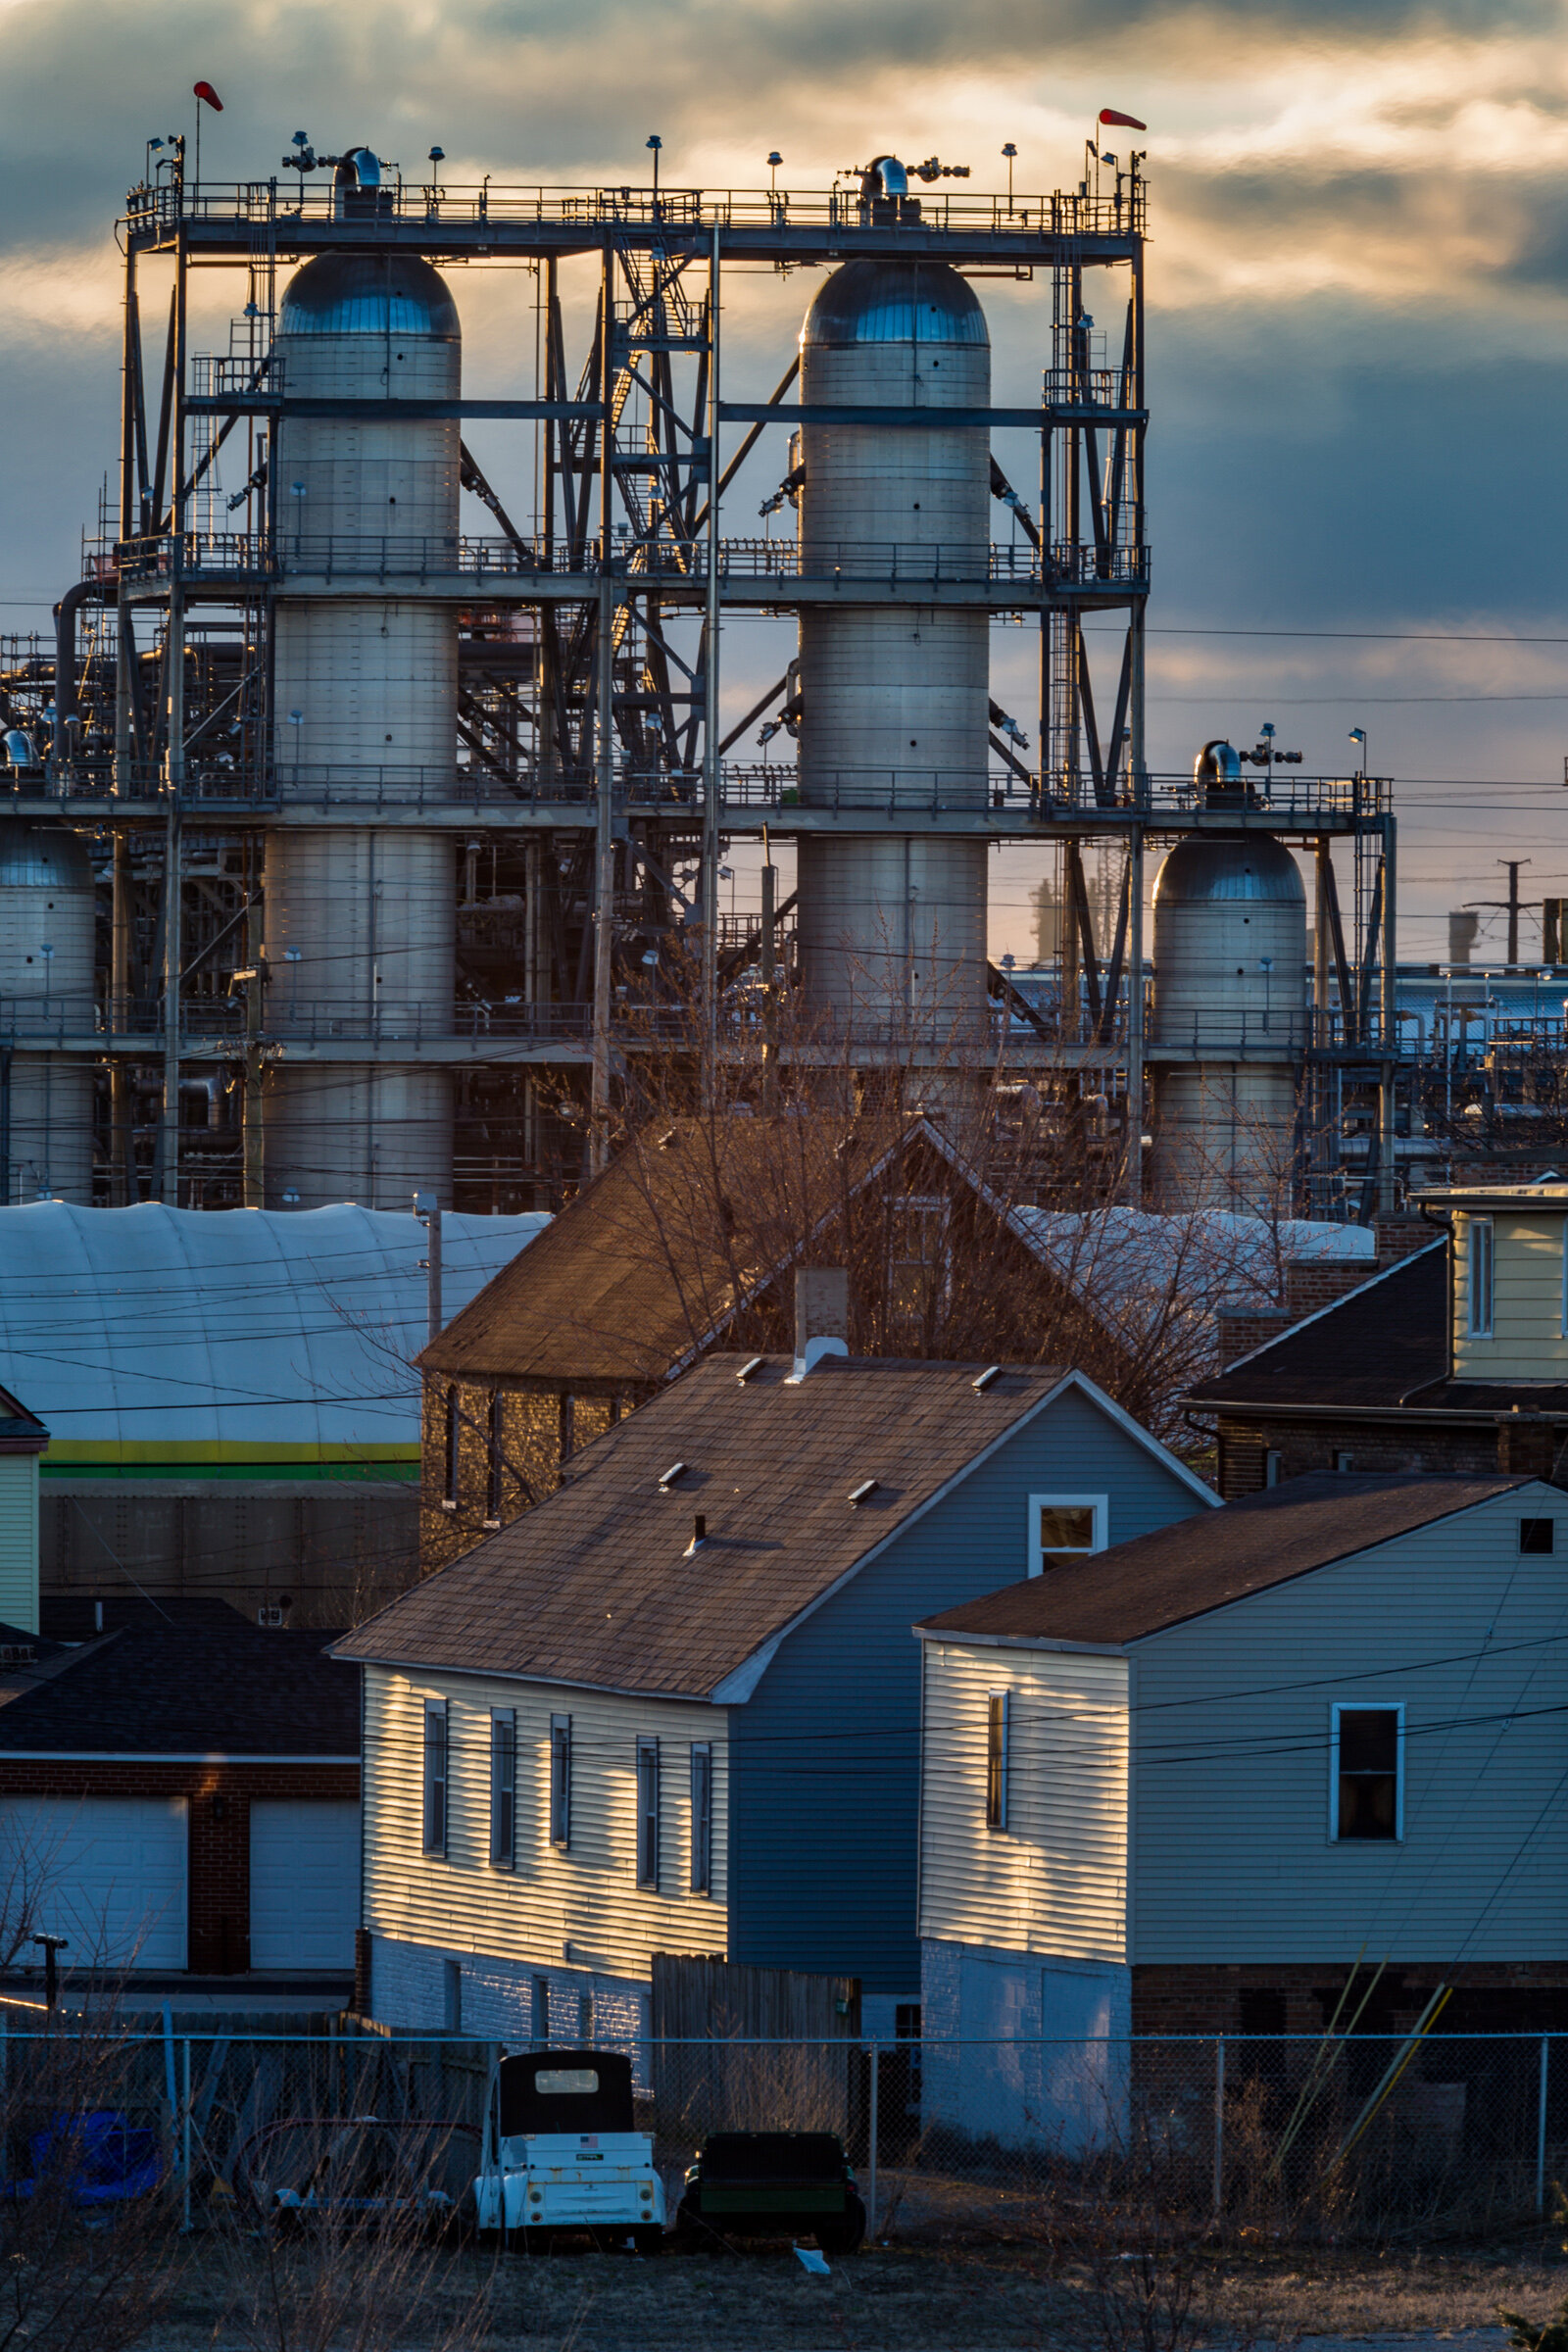 Figure 13. Sunrise at Whiting Refinery, March 2019. Photograph by Matthew Kaplan.